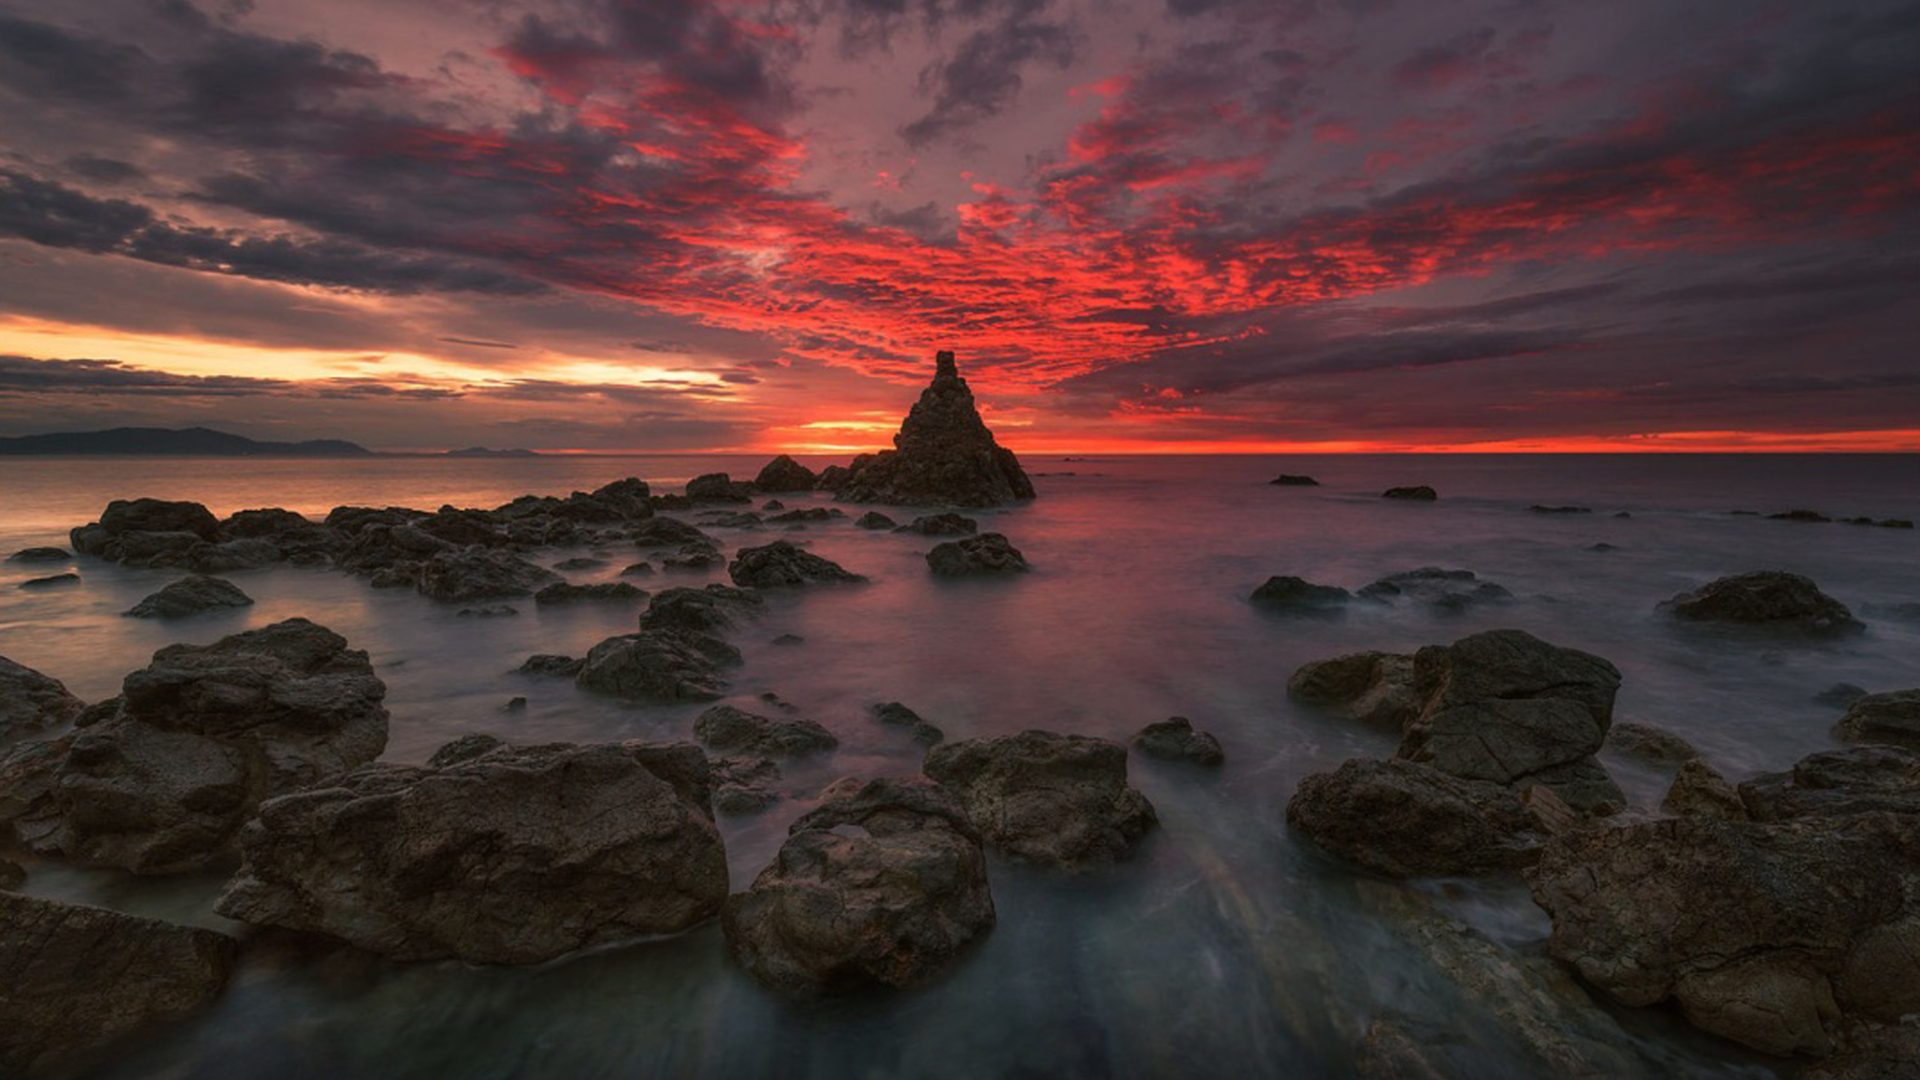 Iphone 4 Wallpaper Resolution Sunset Red Cloud Sea Coast Rock Band Ocean Horizon Desktop